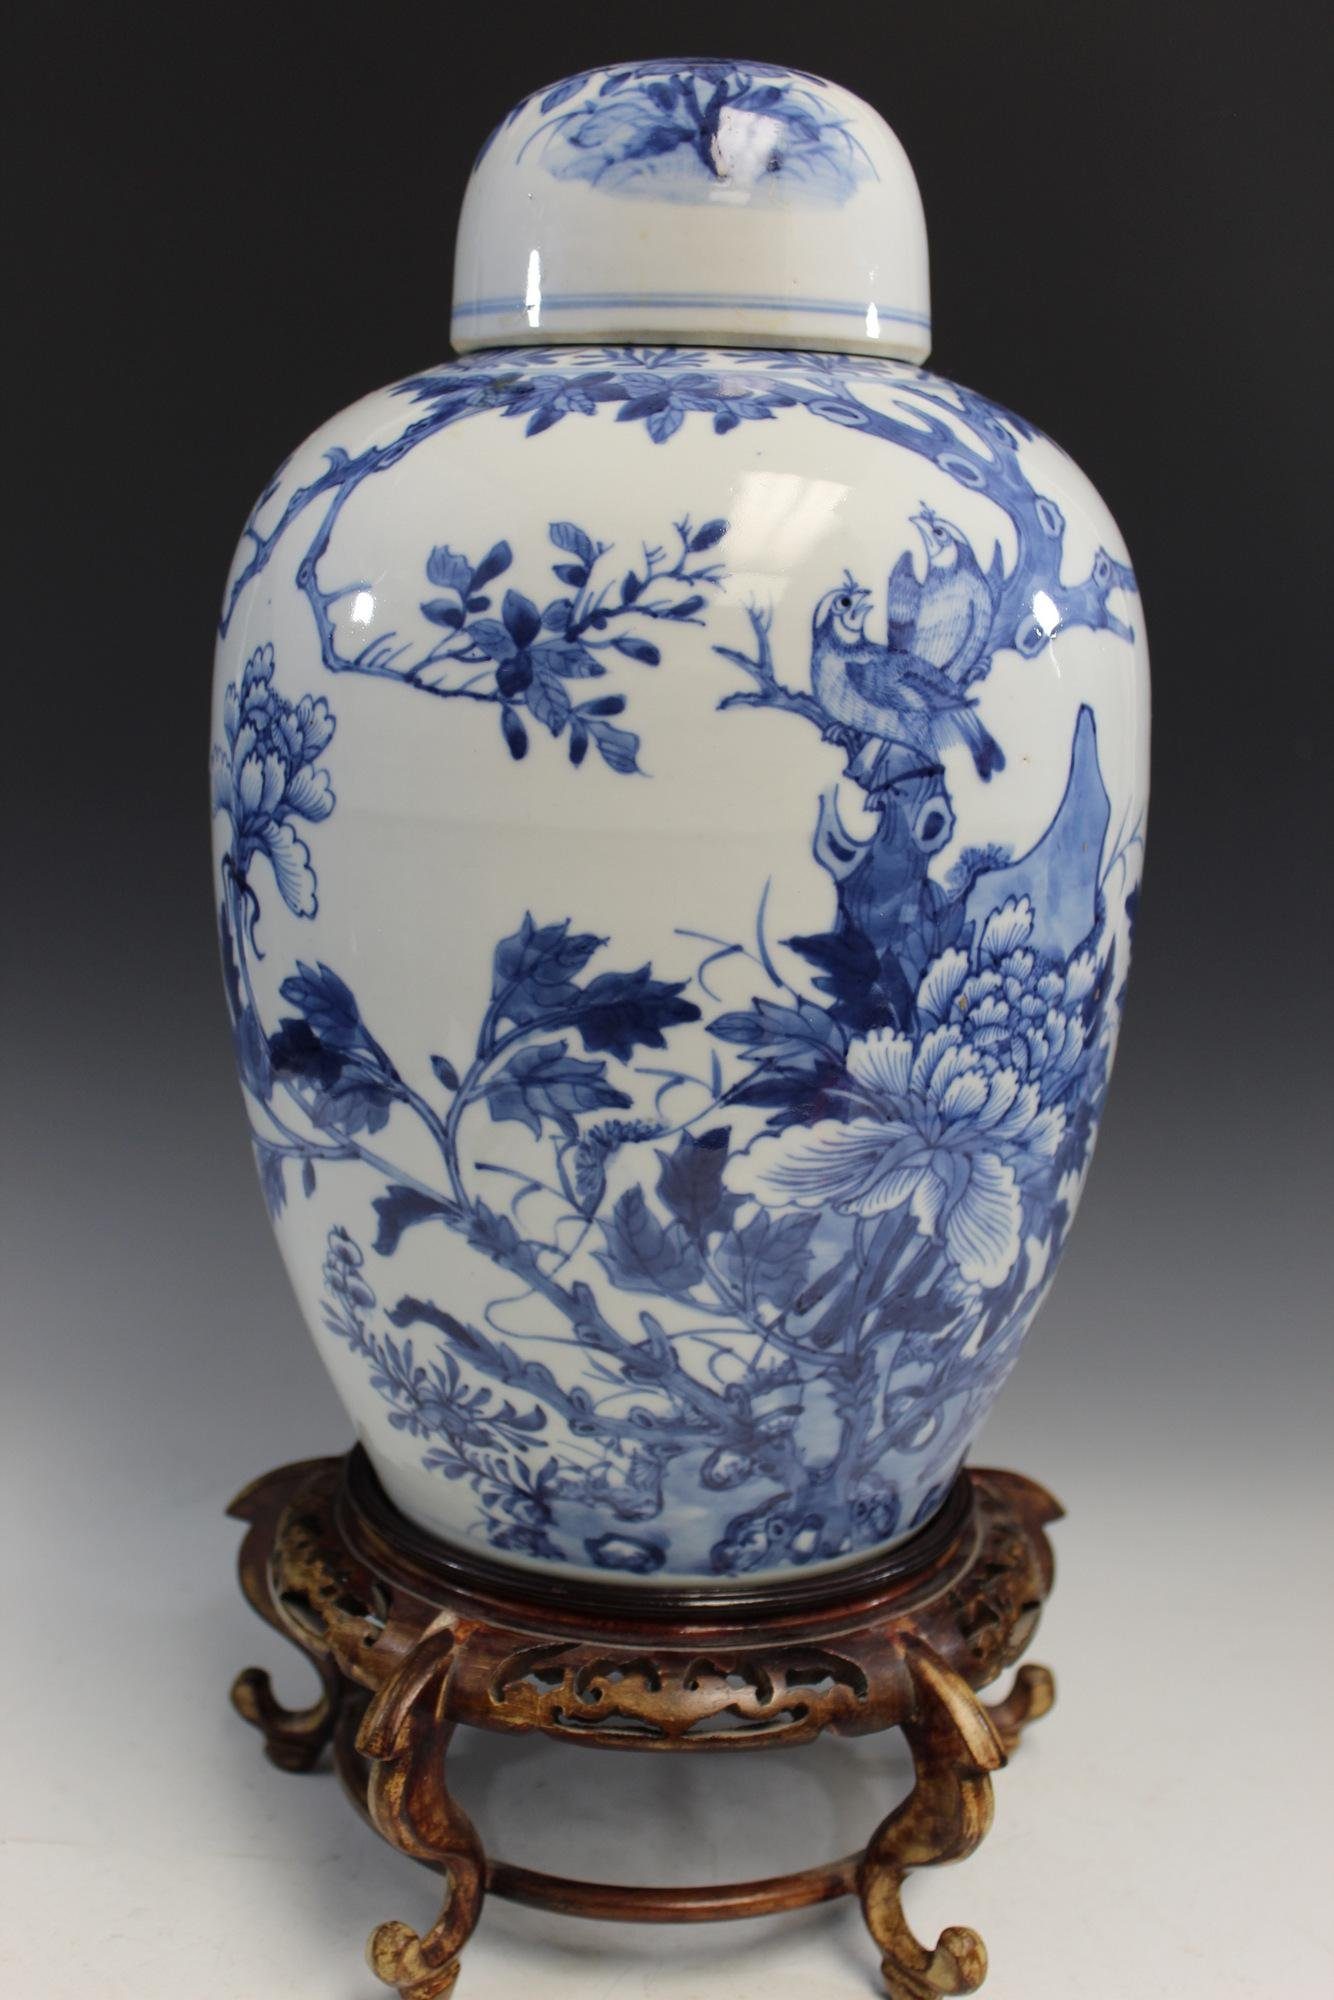 Chinese Antique Blue and White Porcelain Jar on Wood